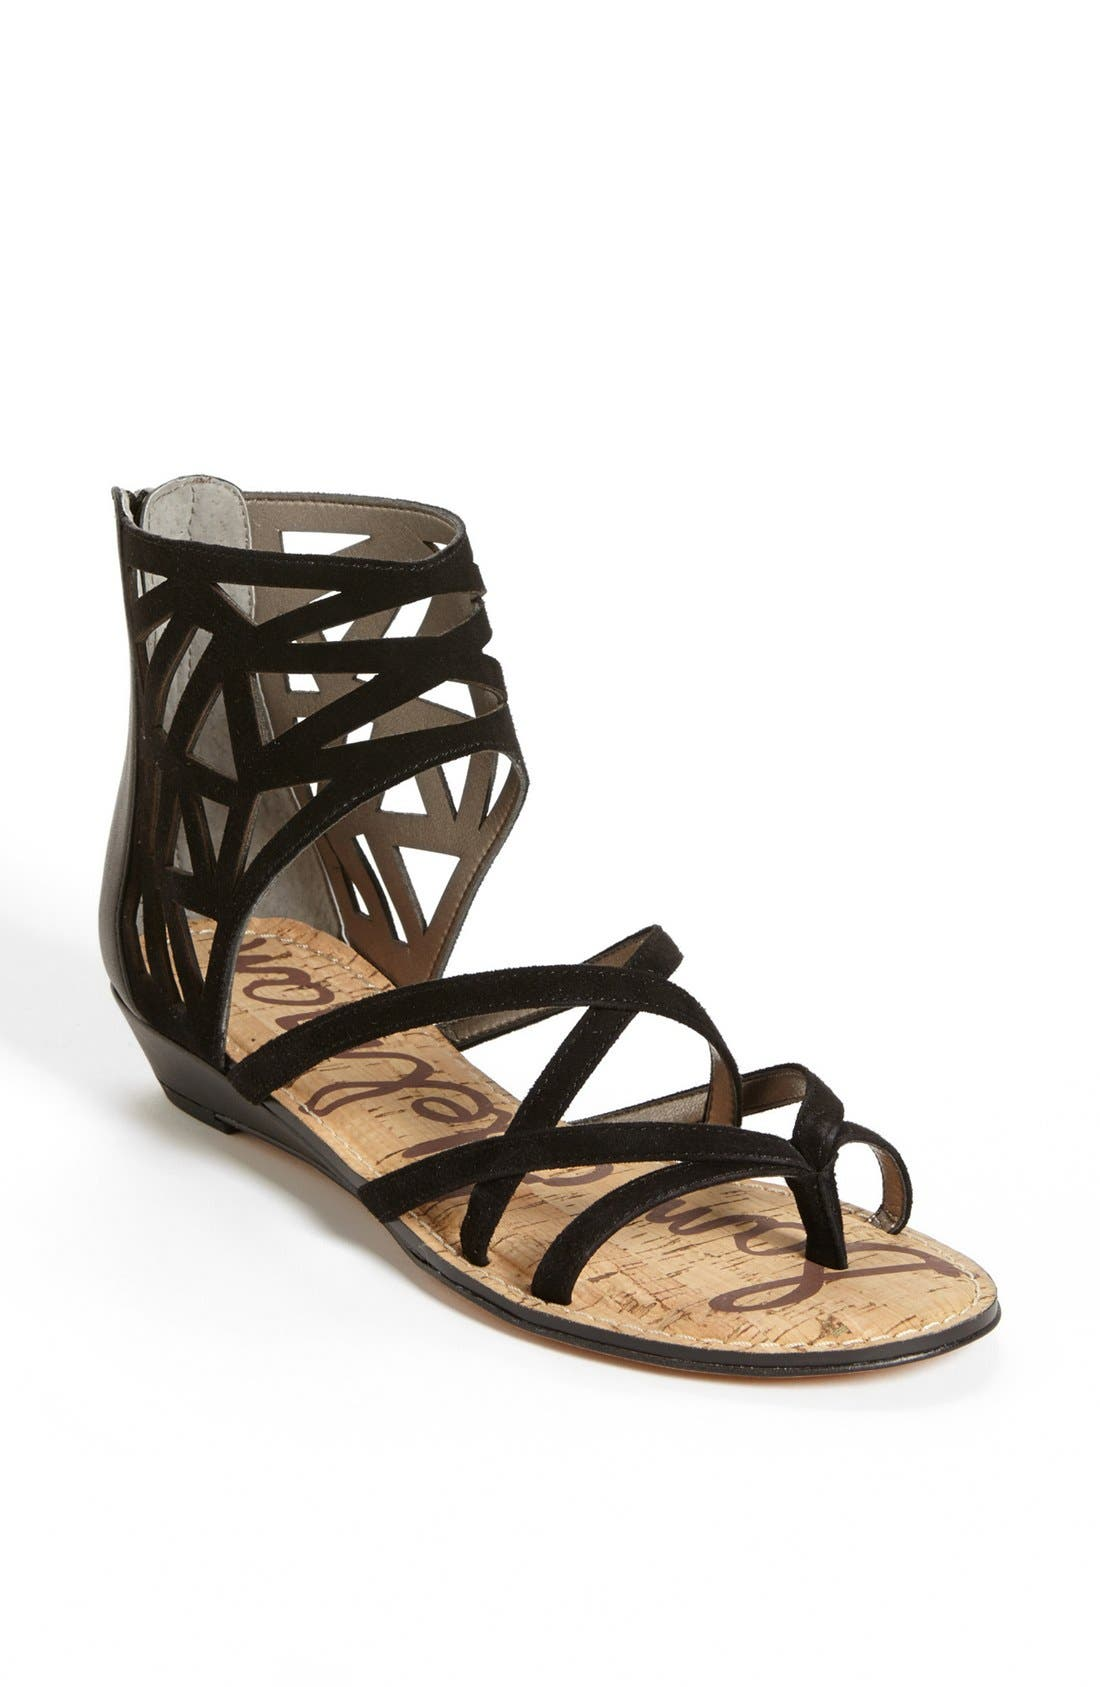 Alternate Image 1 Selected - Sam Edelman 'Dana' Leather Sandal